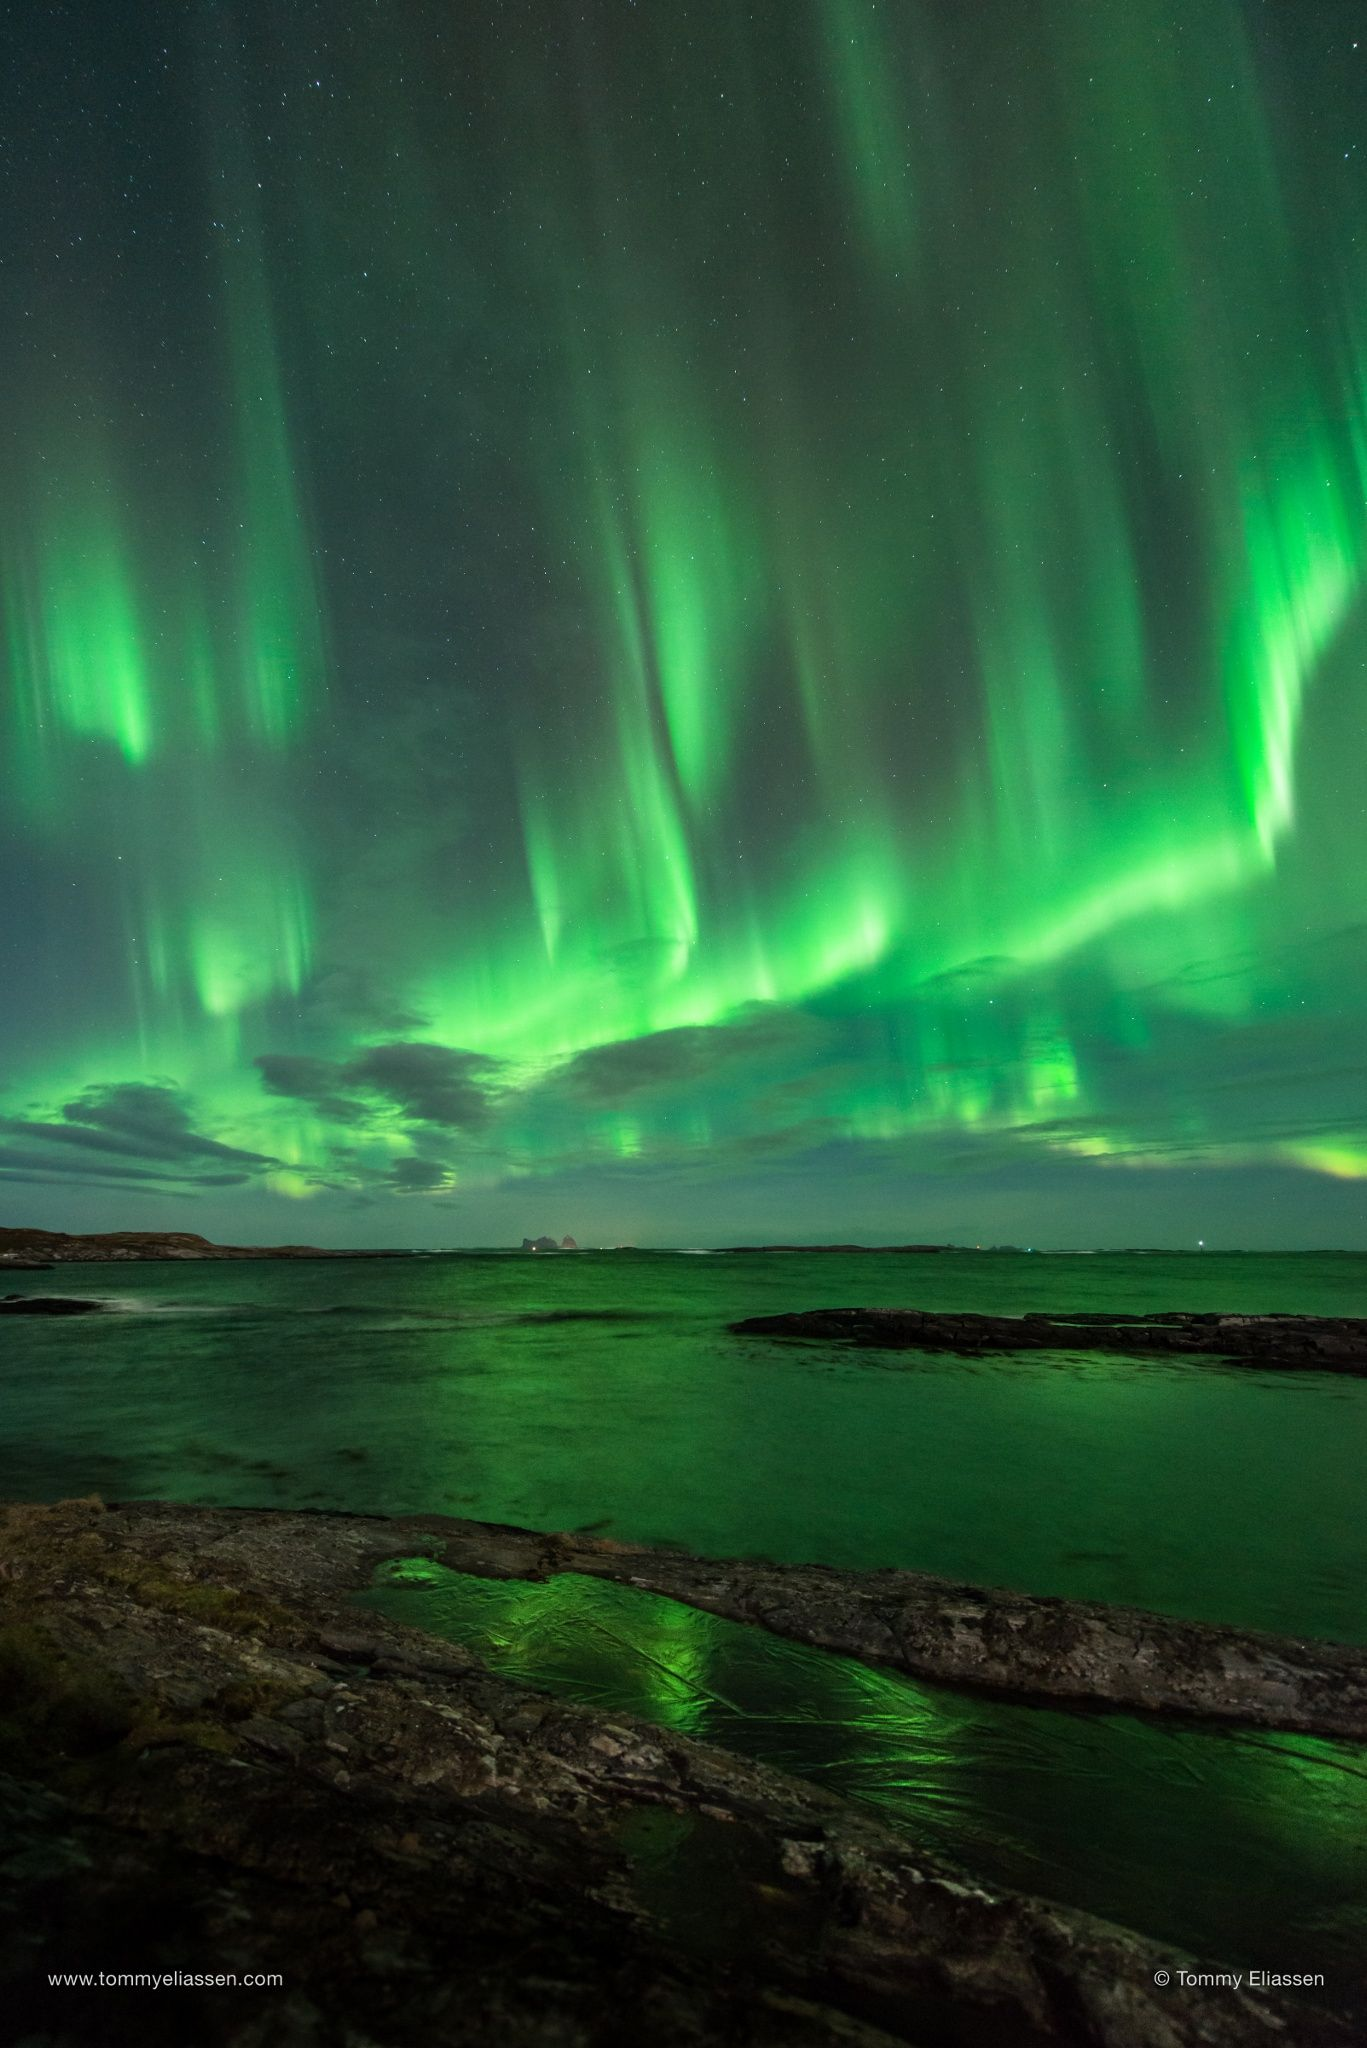 Lights over Træna by Tommy Eliassen on 500px ….Stay cheap and comfortable on your stopover in Oslo: www.airbnb.com/rooms/1036219?guests=2&s=ja99 and https://www.airbnb.com/rooms/6808361